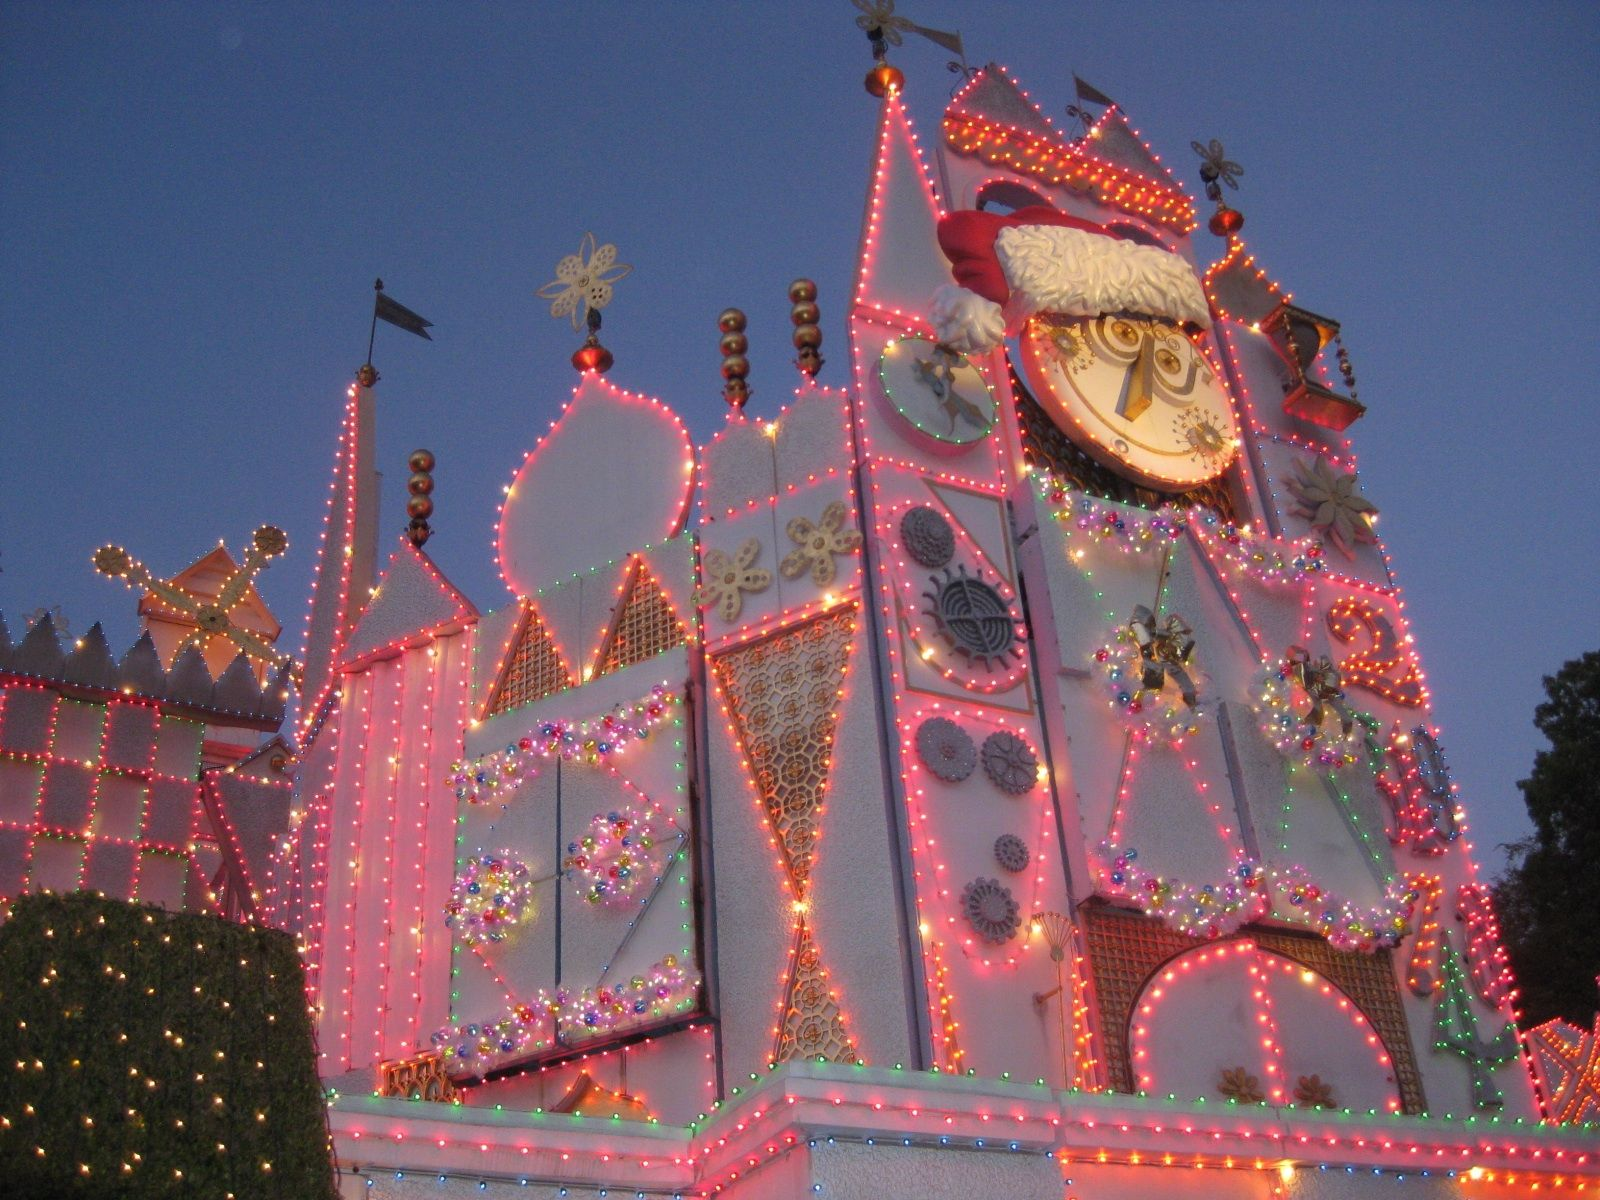 It S A Small World Christmas At Disneyland Disneyland Christmas Disney Christmas Disney World Fl